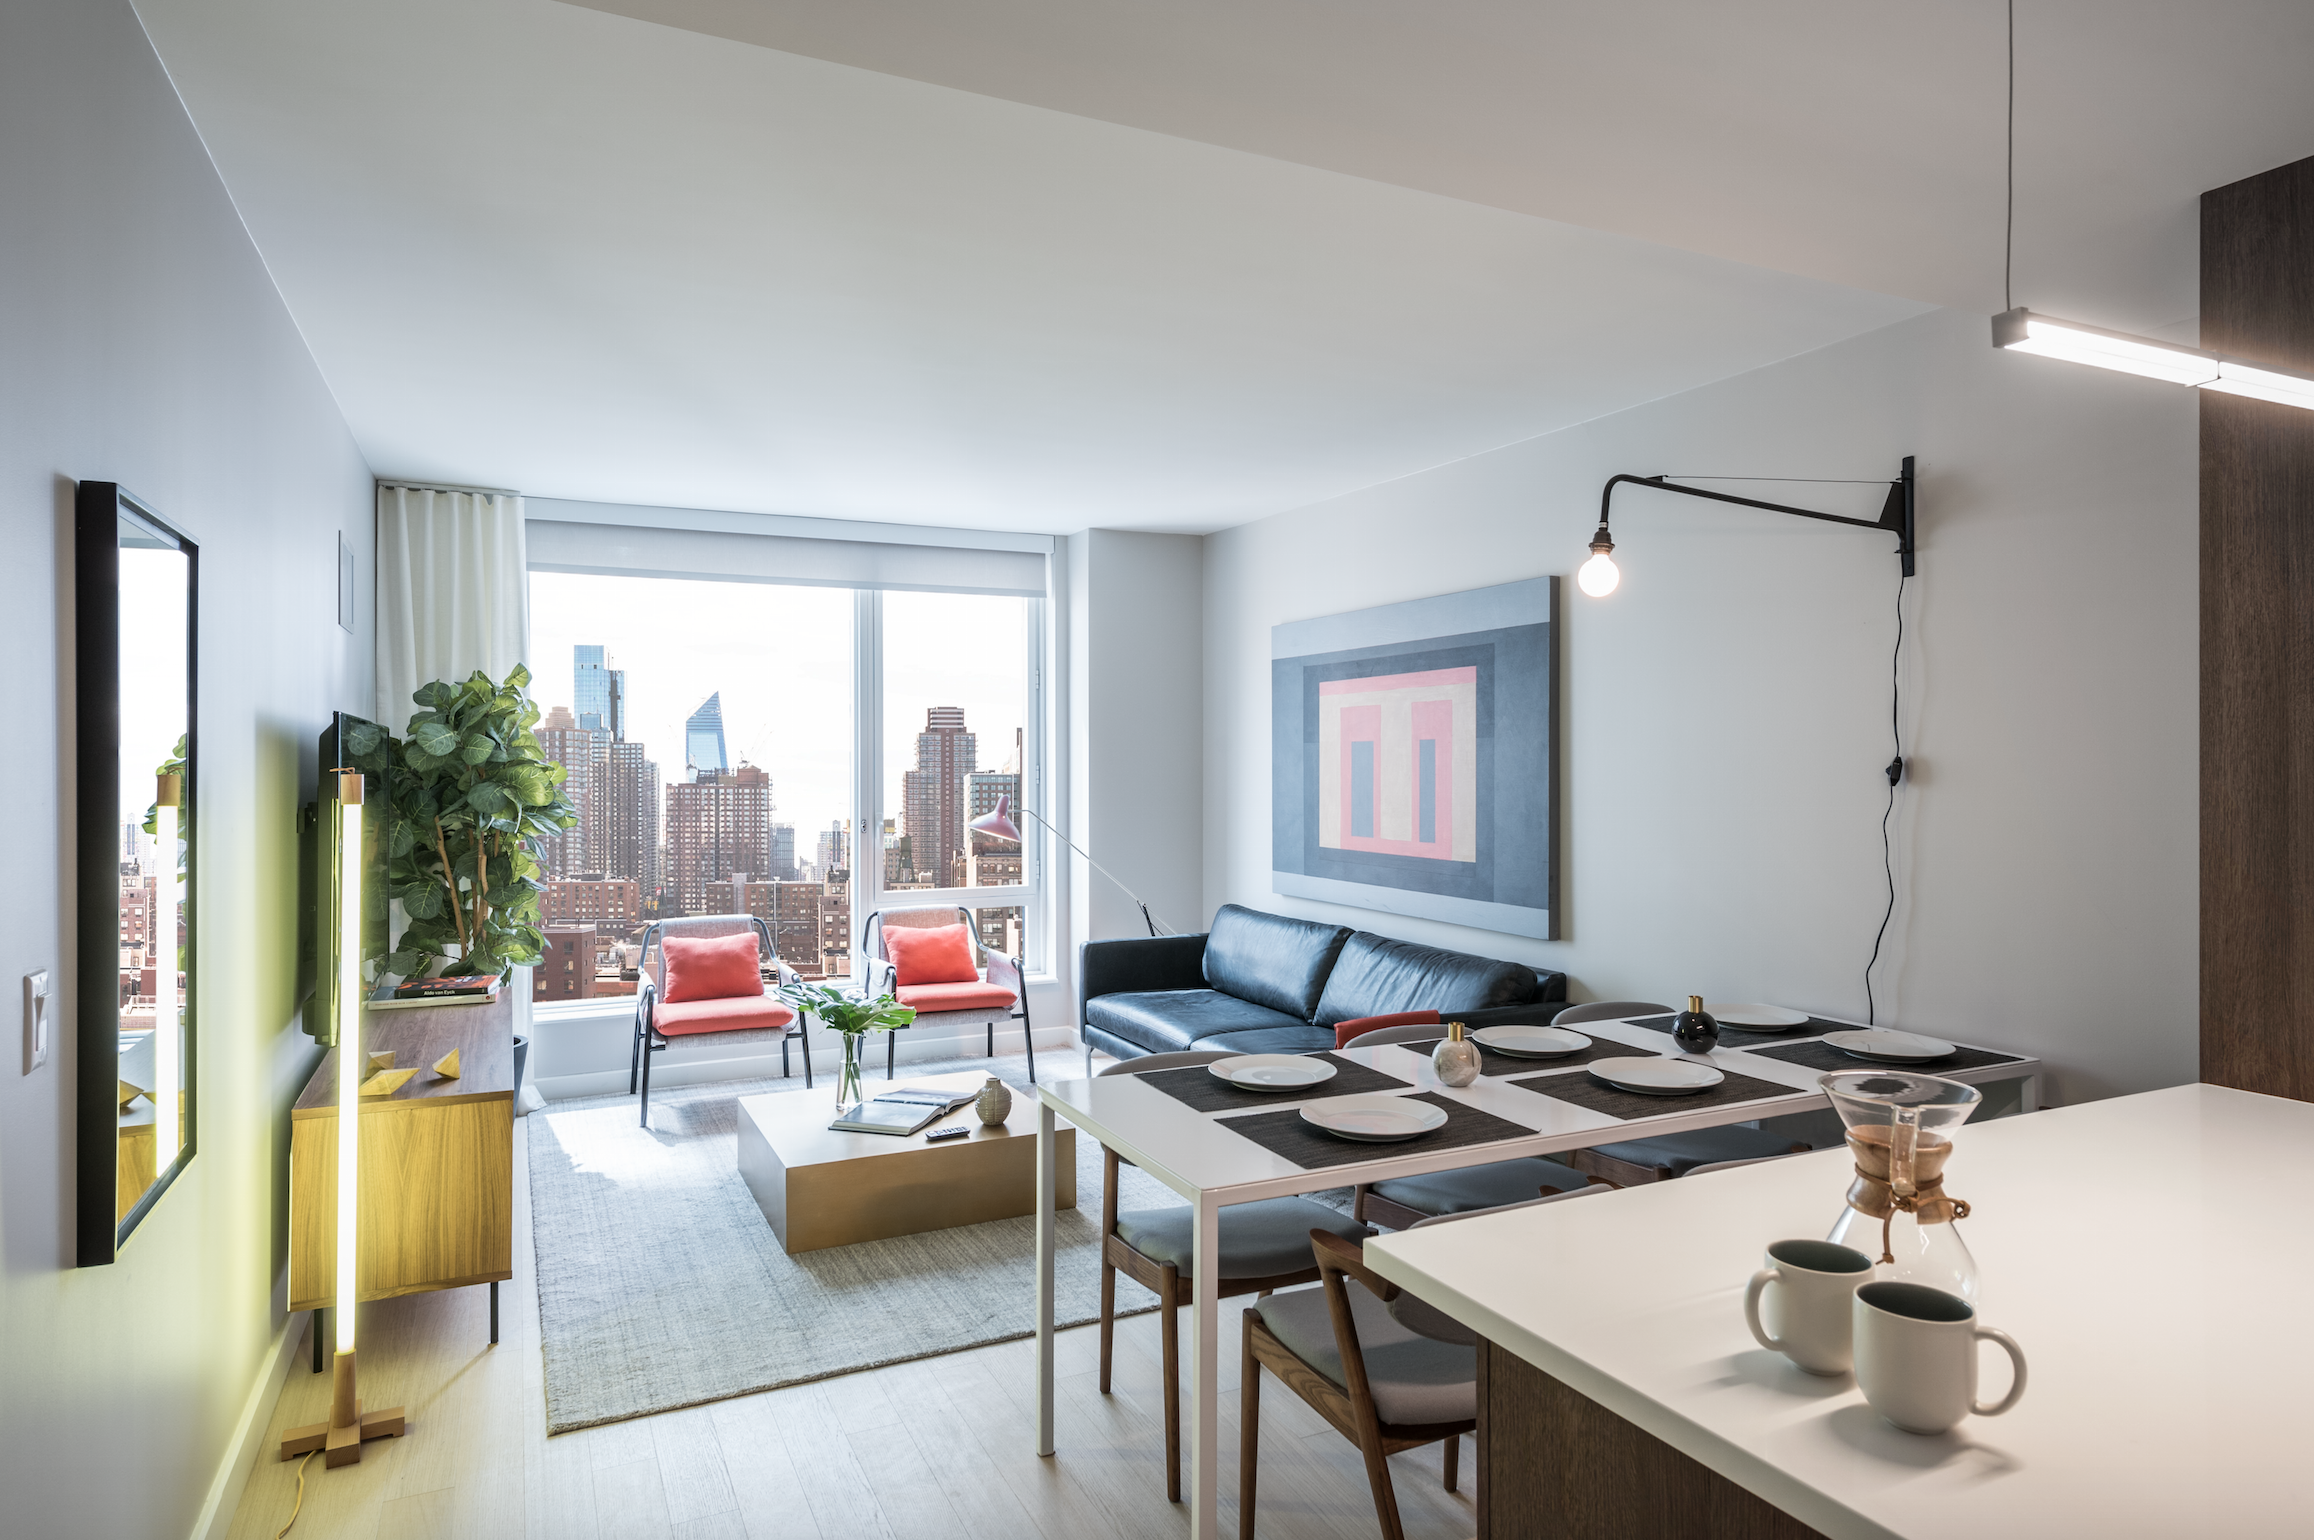 Check Out 525 West 52nd Street, Hell's Kitchen New Luxury Rental Project Featuring LIV unLtd. Fitness